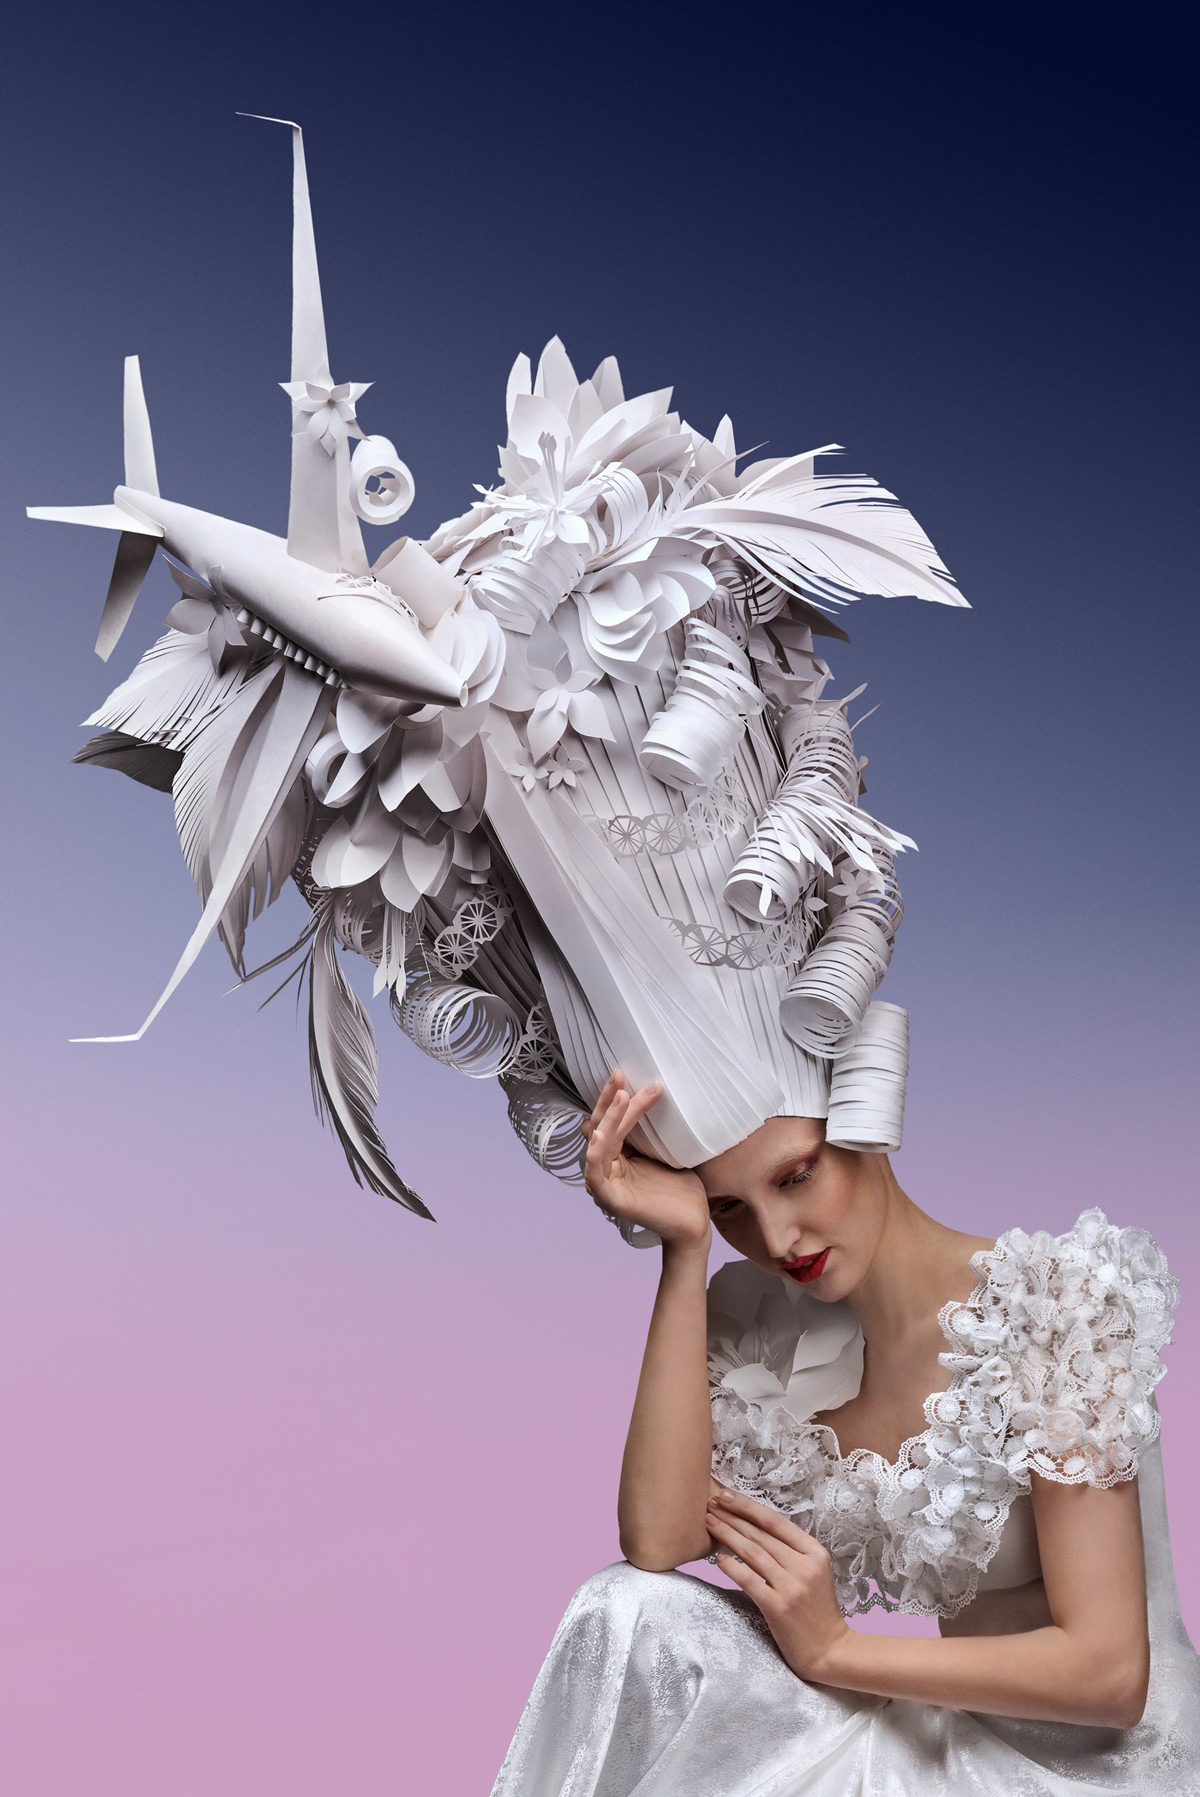 Sky-High Paper Wigs Topped With Modern Luxuries by Asya Kozina